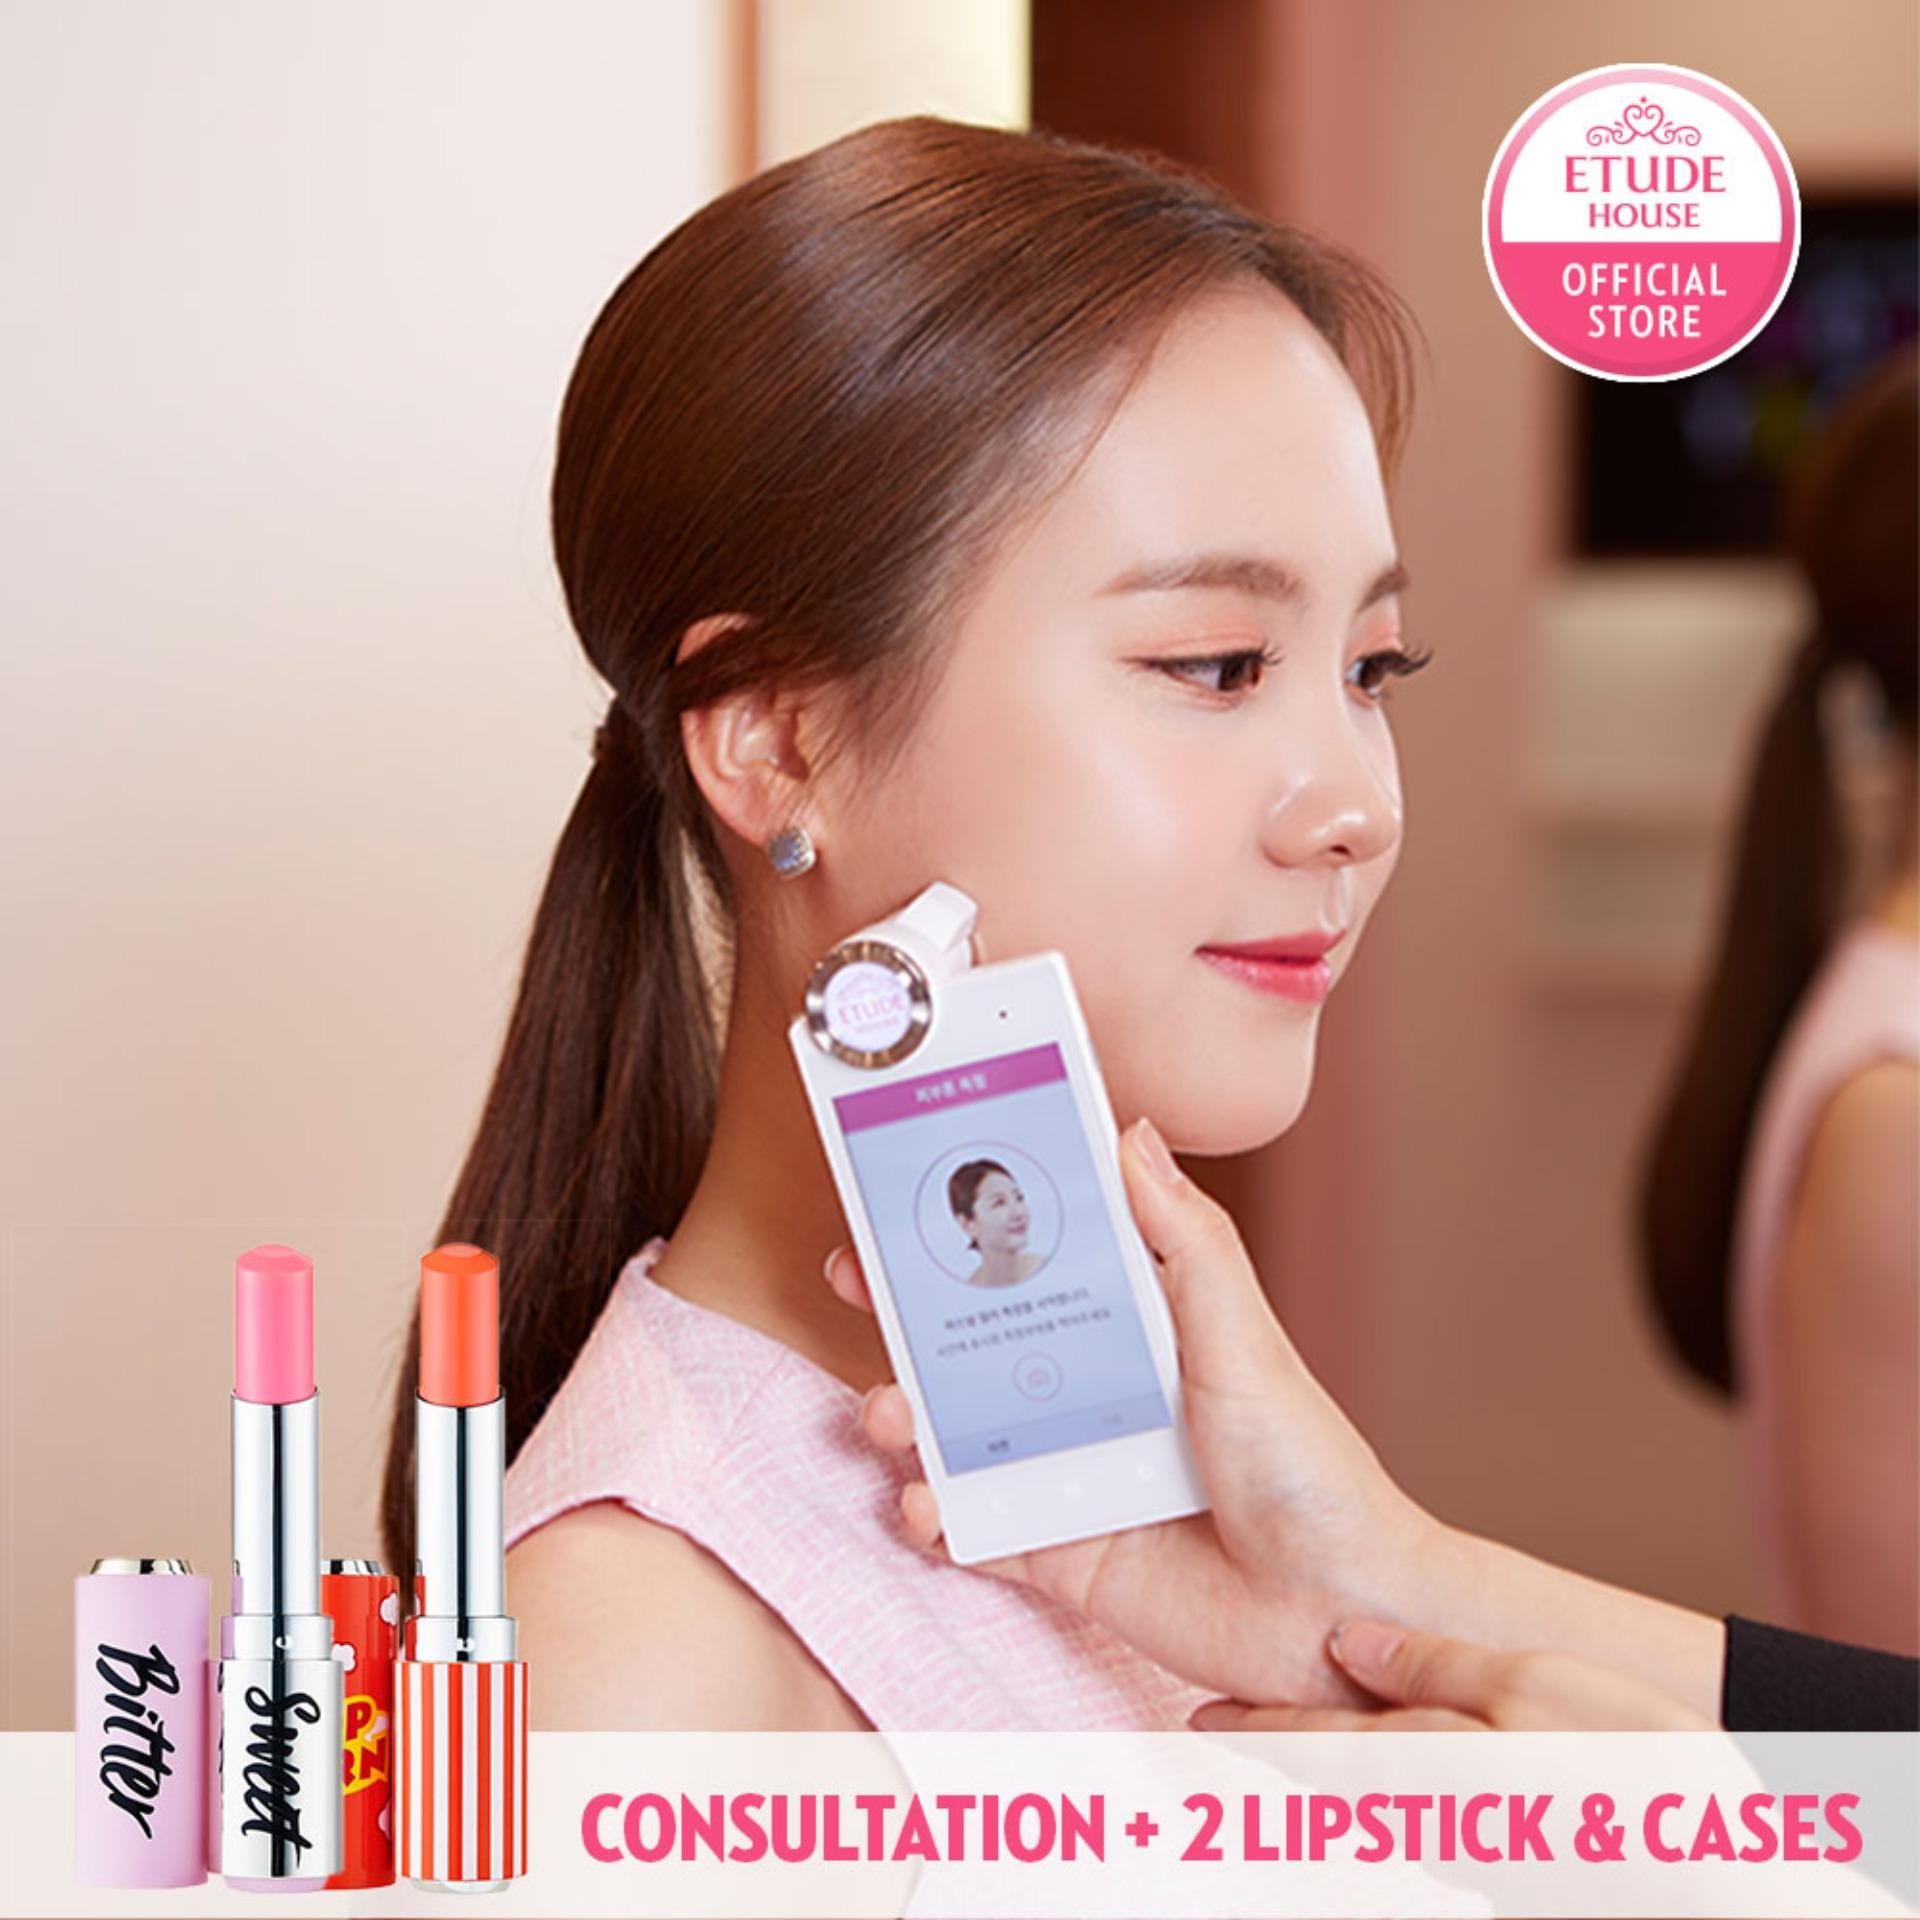 Etude House Color Factory My Personal Lipstick Service (2 Colors) By Etudehouse (capitaland Merchant).